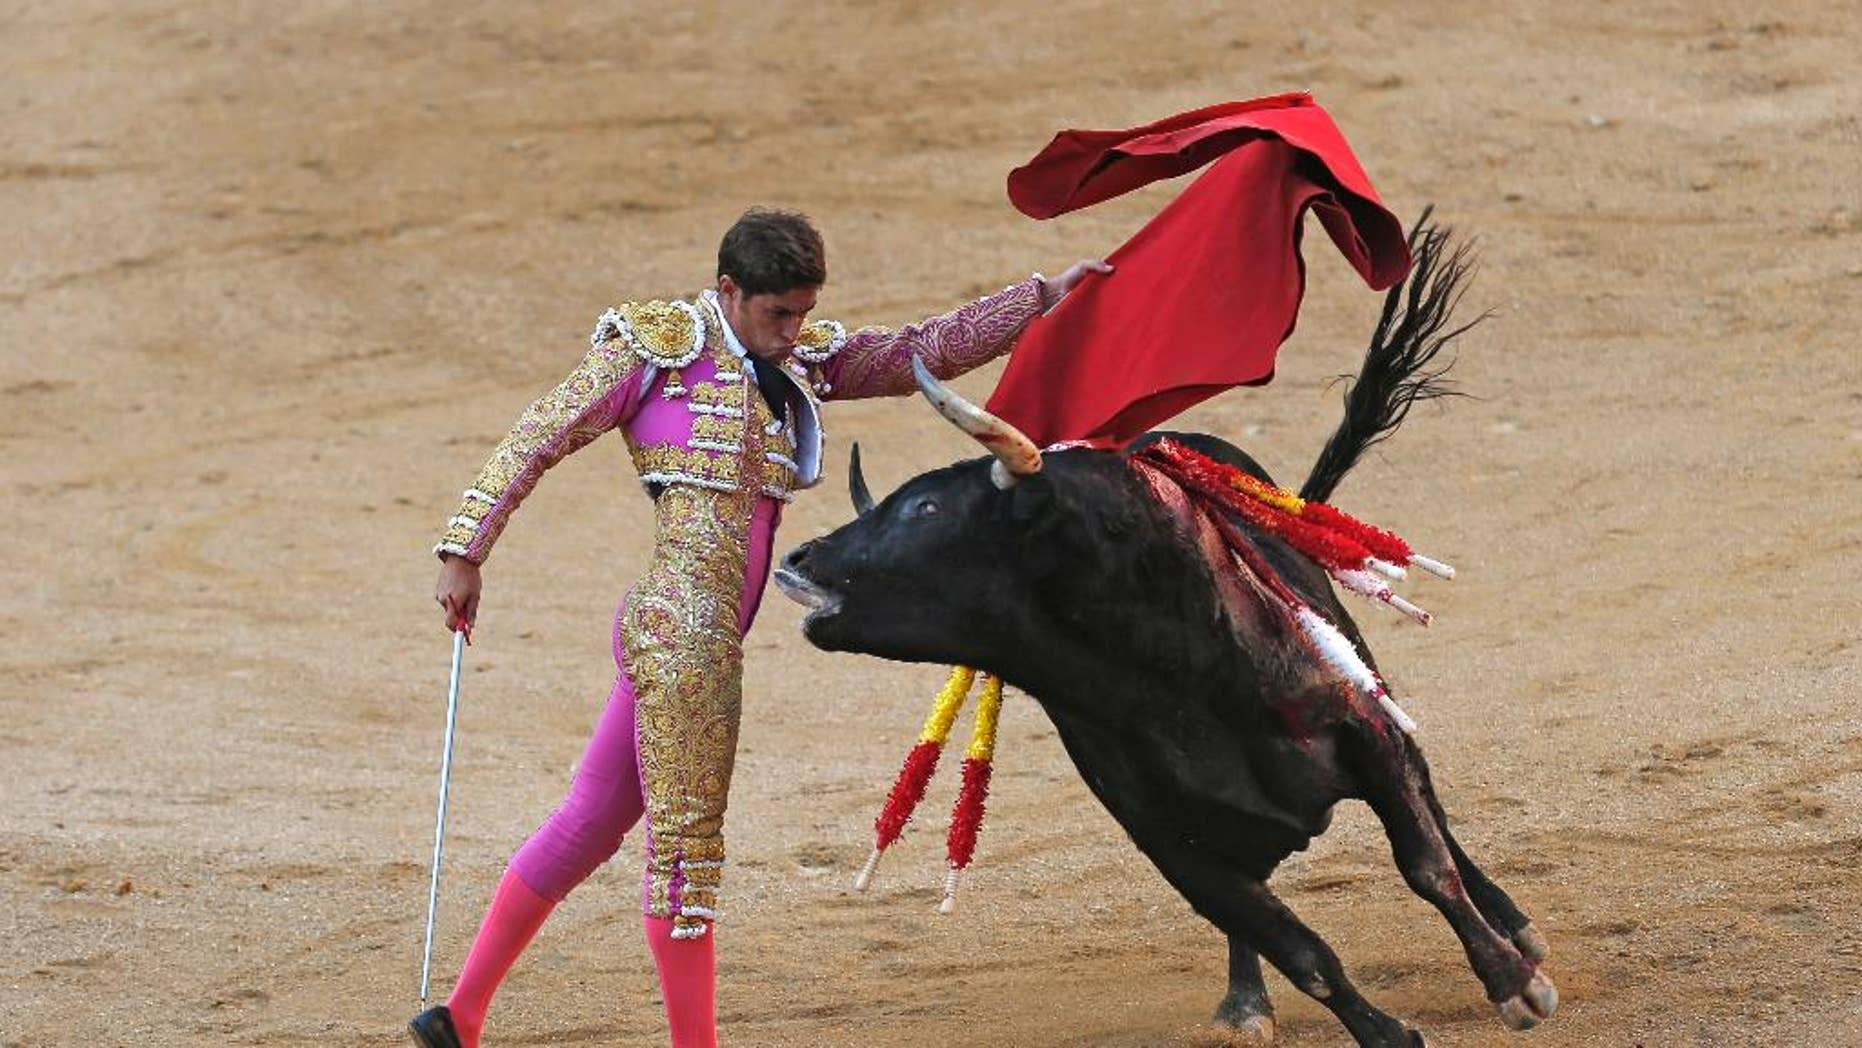 FILE - In a Sunday, Oct. 9, 2016 file photo, Spanish bullfighter Mario Palacios performs with an Aguadulce ranch fighting bull during a bullfight at the Las Ventas bullring in Madrid, Spain.  Spain's top court on Thursday, Oct. 20, 2016 overruled a local ban against bullfighting in the powerful northeastern region of Catalonia, saying it violated a national law protecting the spectacle. (AP Photo/Francisco Seco, File)